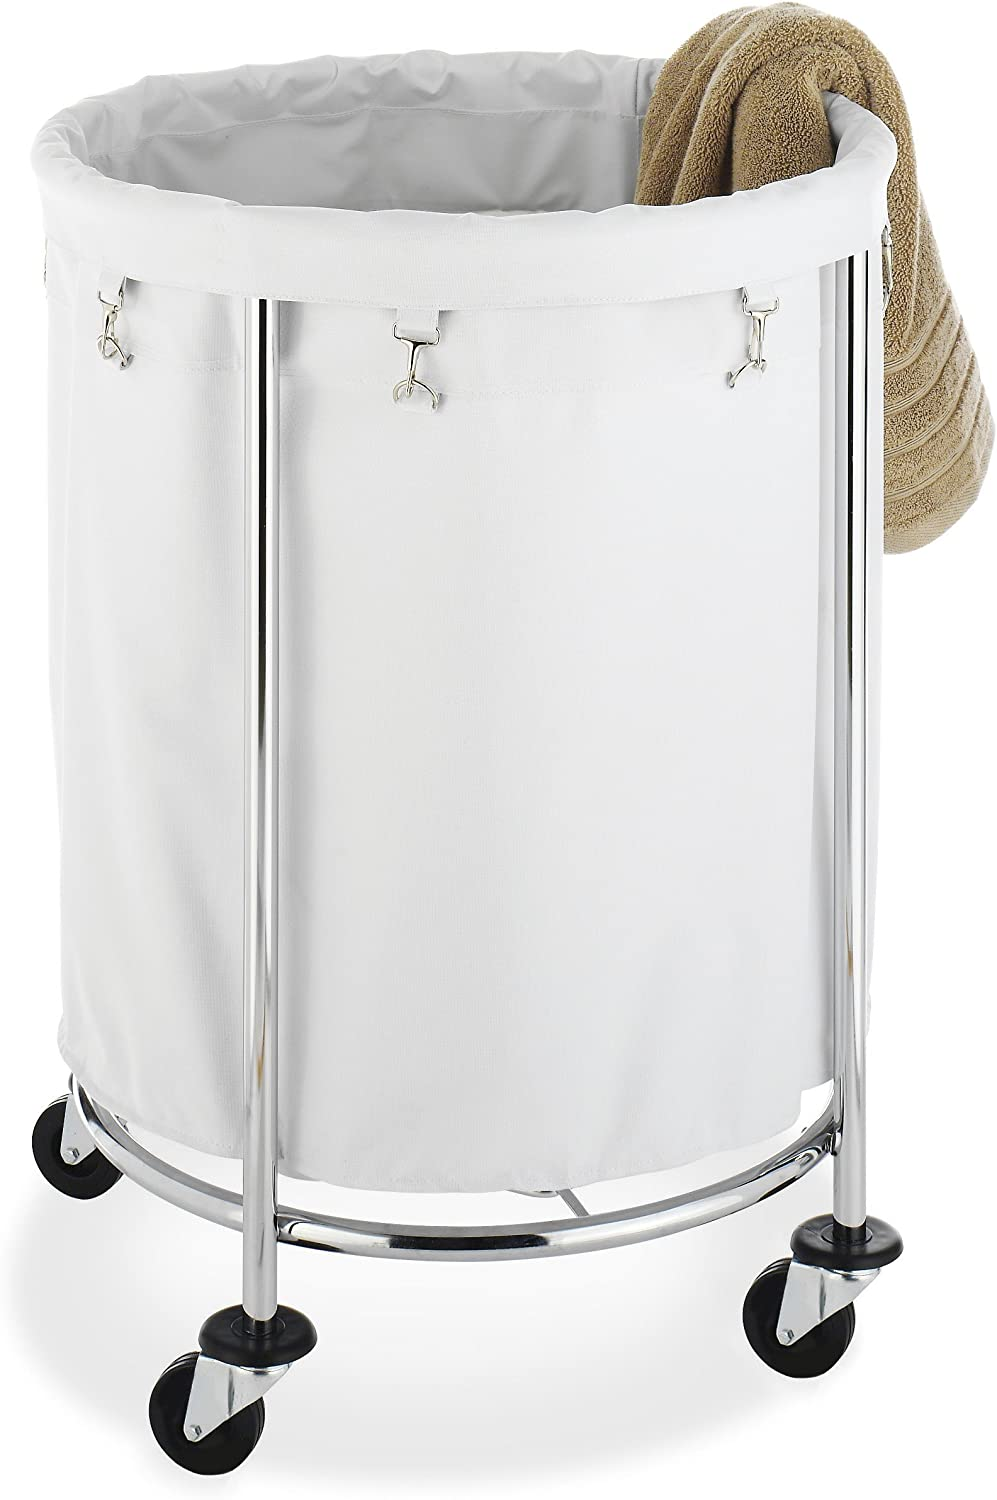 Whitmor Round Commercial Removable Liner and Heavy Duty Wheels-Chrome Laundry Hamper, Silver and White